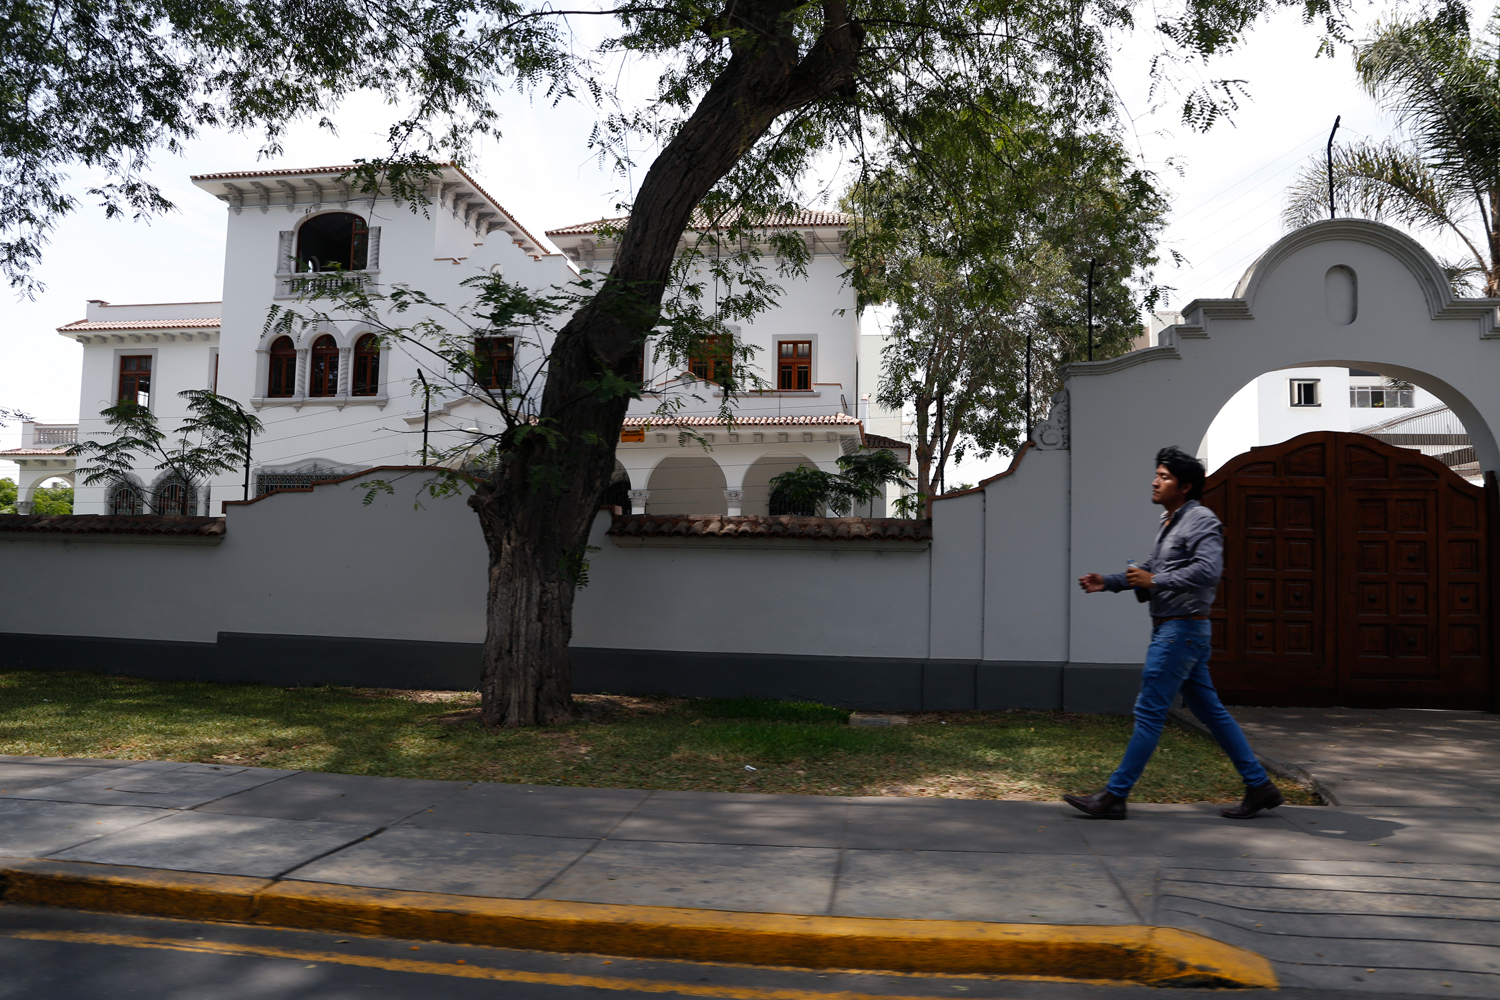 A young man wearing fitted jeans, shiny leather shoes and a dark grey shirt walks along the pavement in an upscale neighbourhood of Lima. He is passing the tall wooden gate to a three-storey, colonial-style villa, painted all white and shaded by a number of trees in its extensive, enclosed garden.